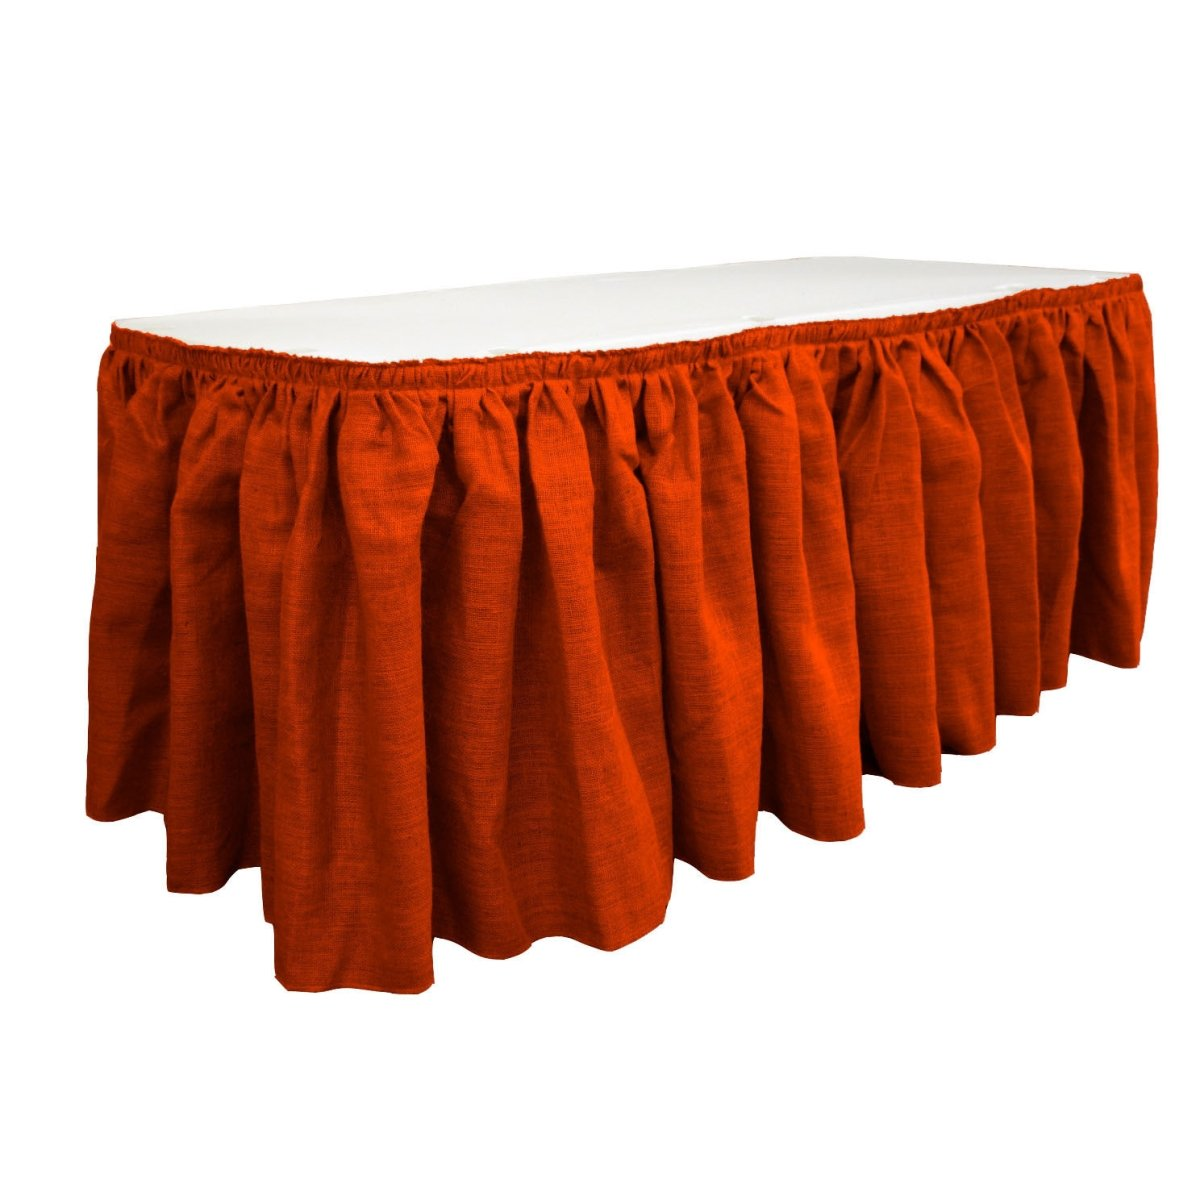 LA Linen SkirtBurlap17x29-10Lclips-Red Burlap Table Skirt with 10 L-Clips44; Red - 17 ft. x 29 in.